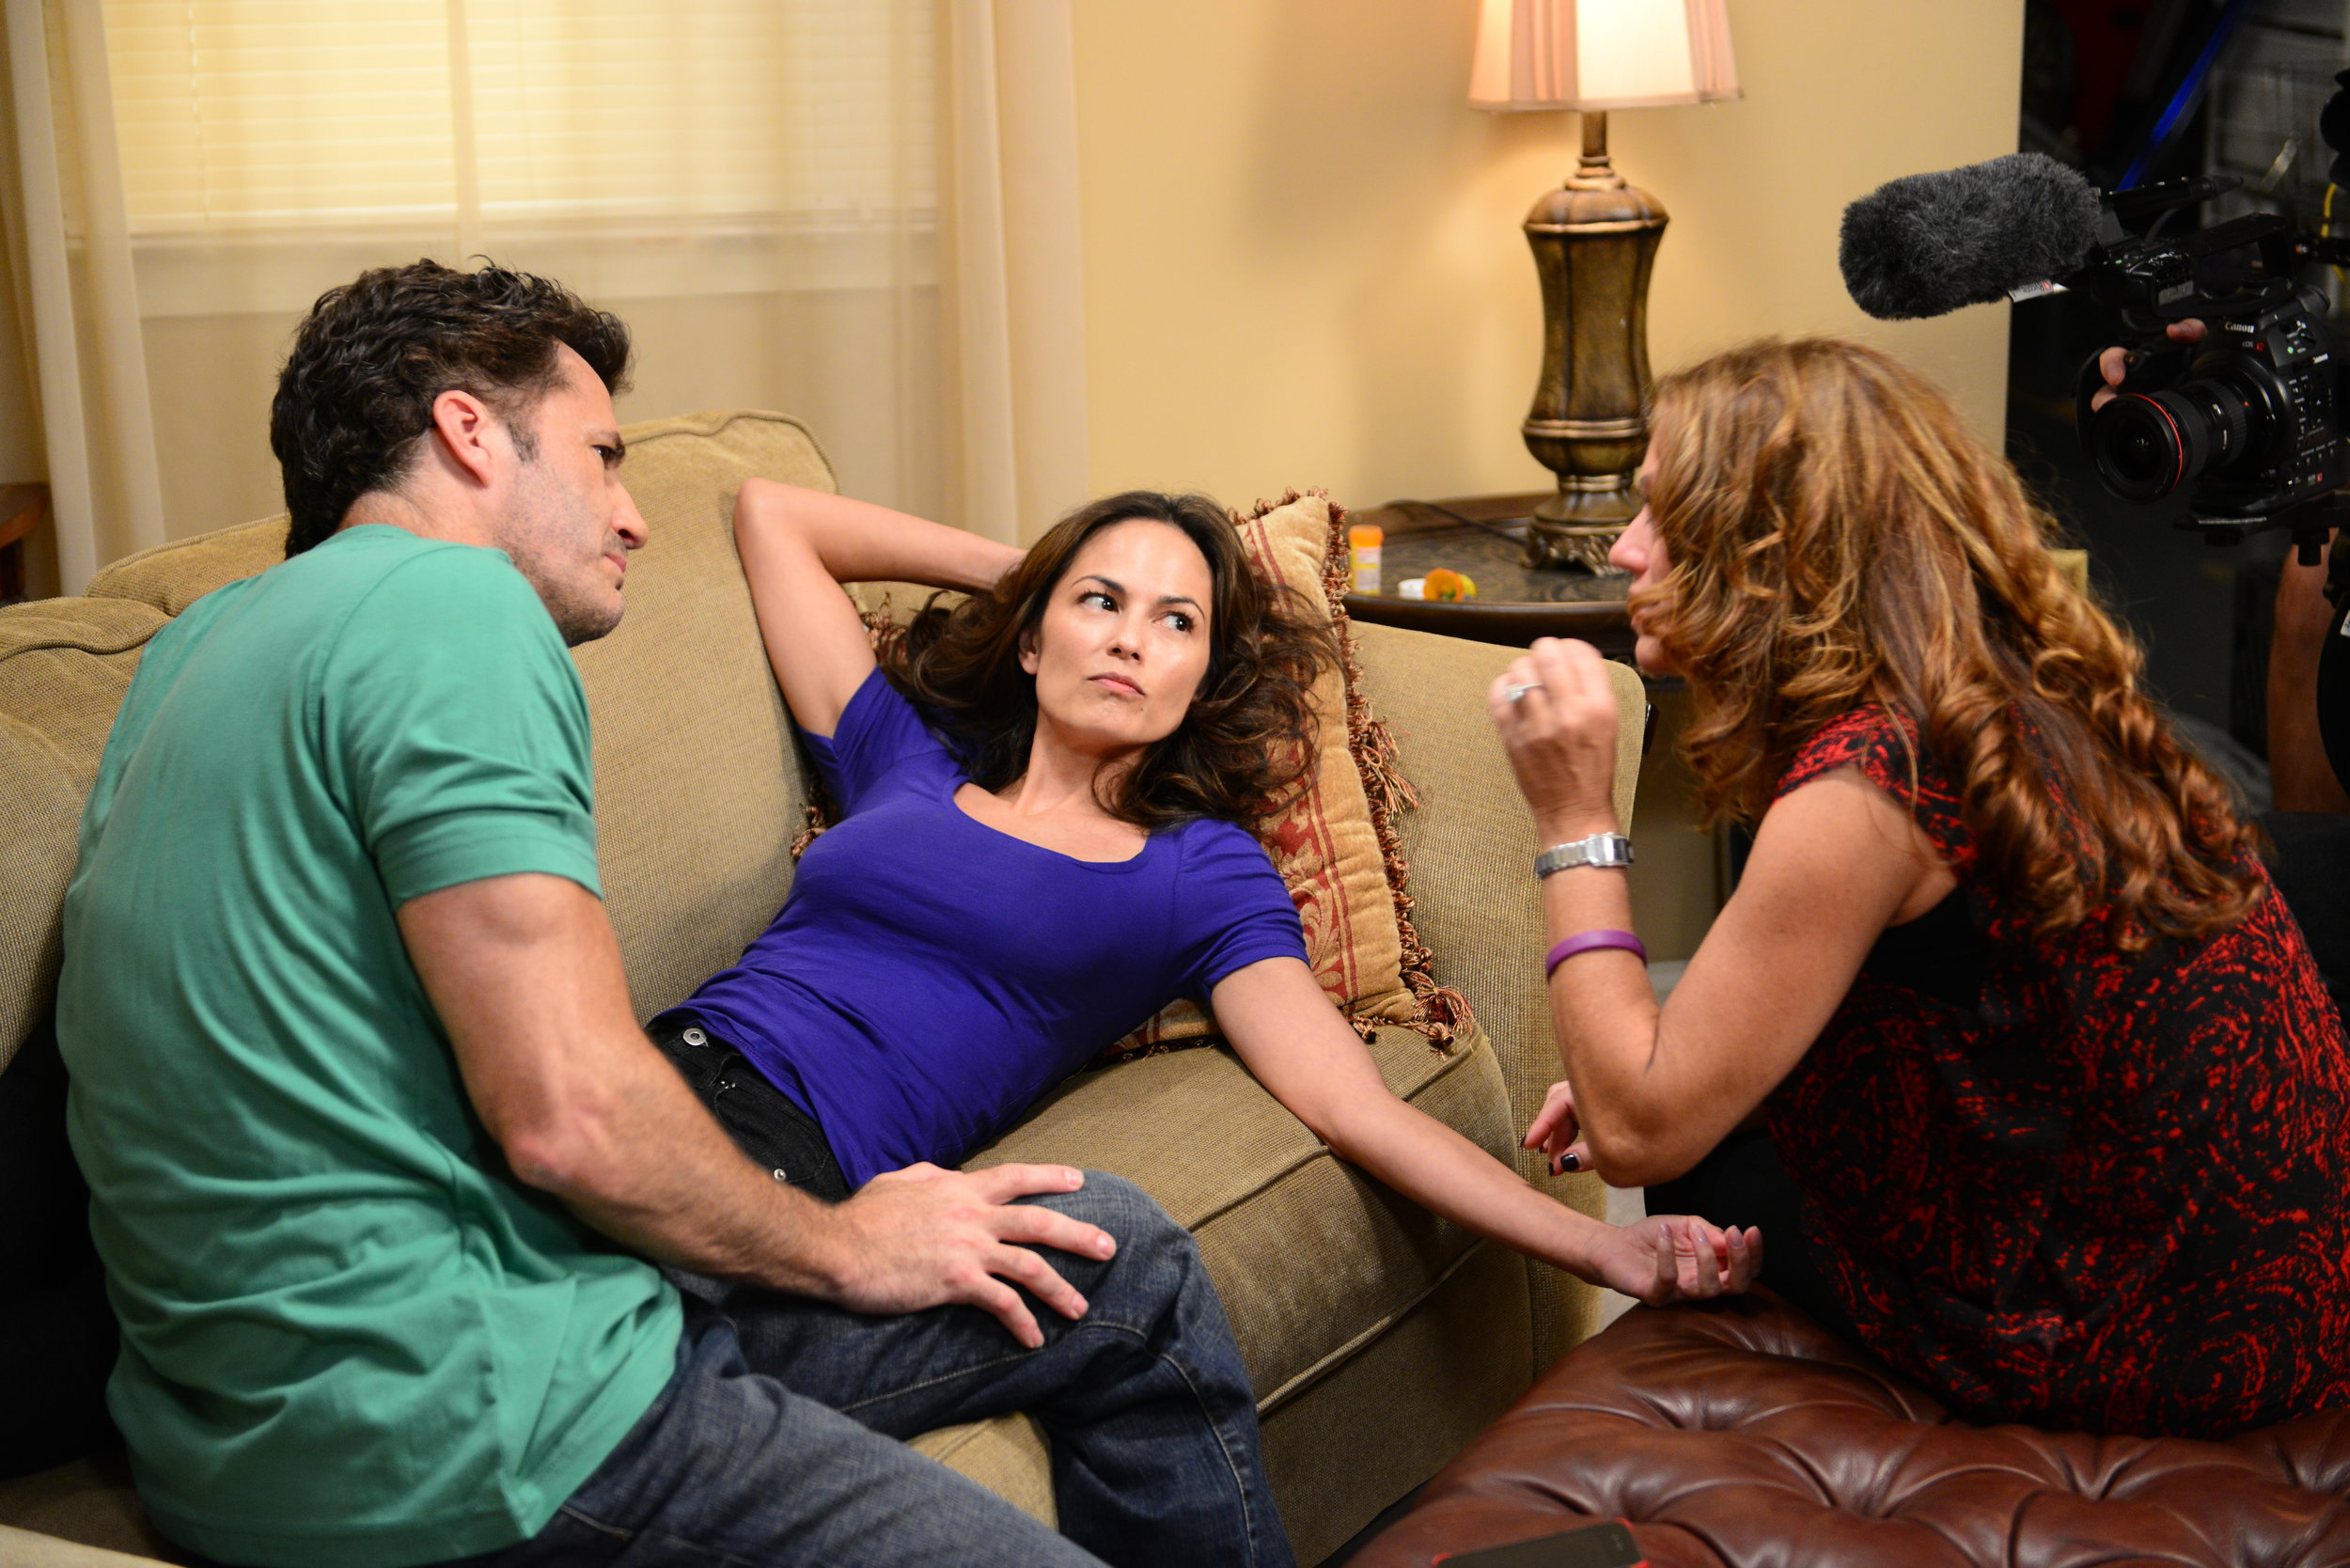 """Michael Lowry, Terri Ivens, and Sonia Blangiardo on the set of """"Tainted Dreams"""""""